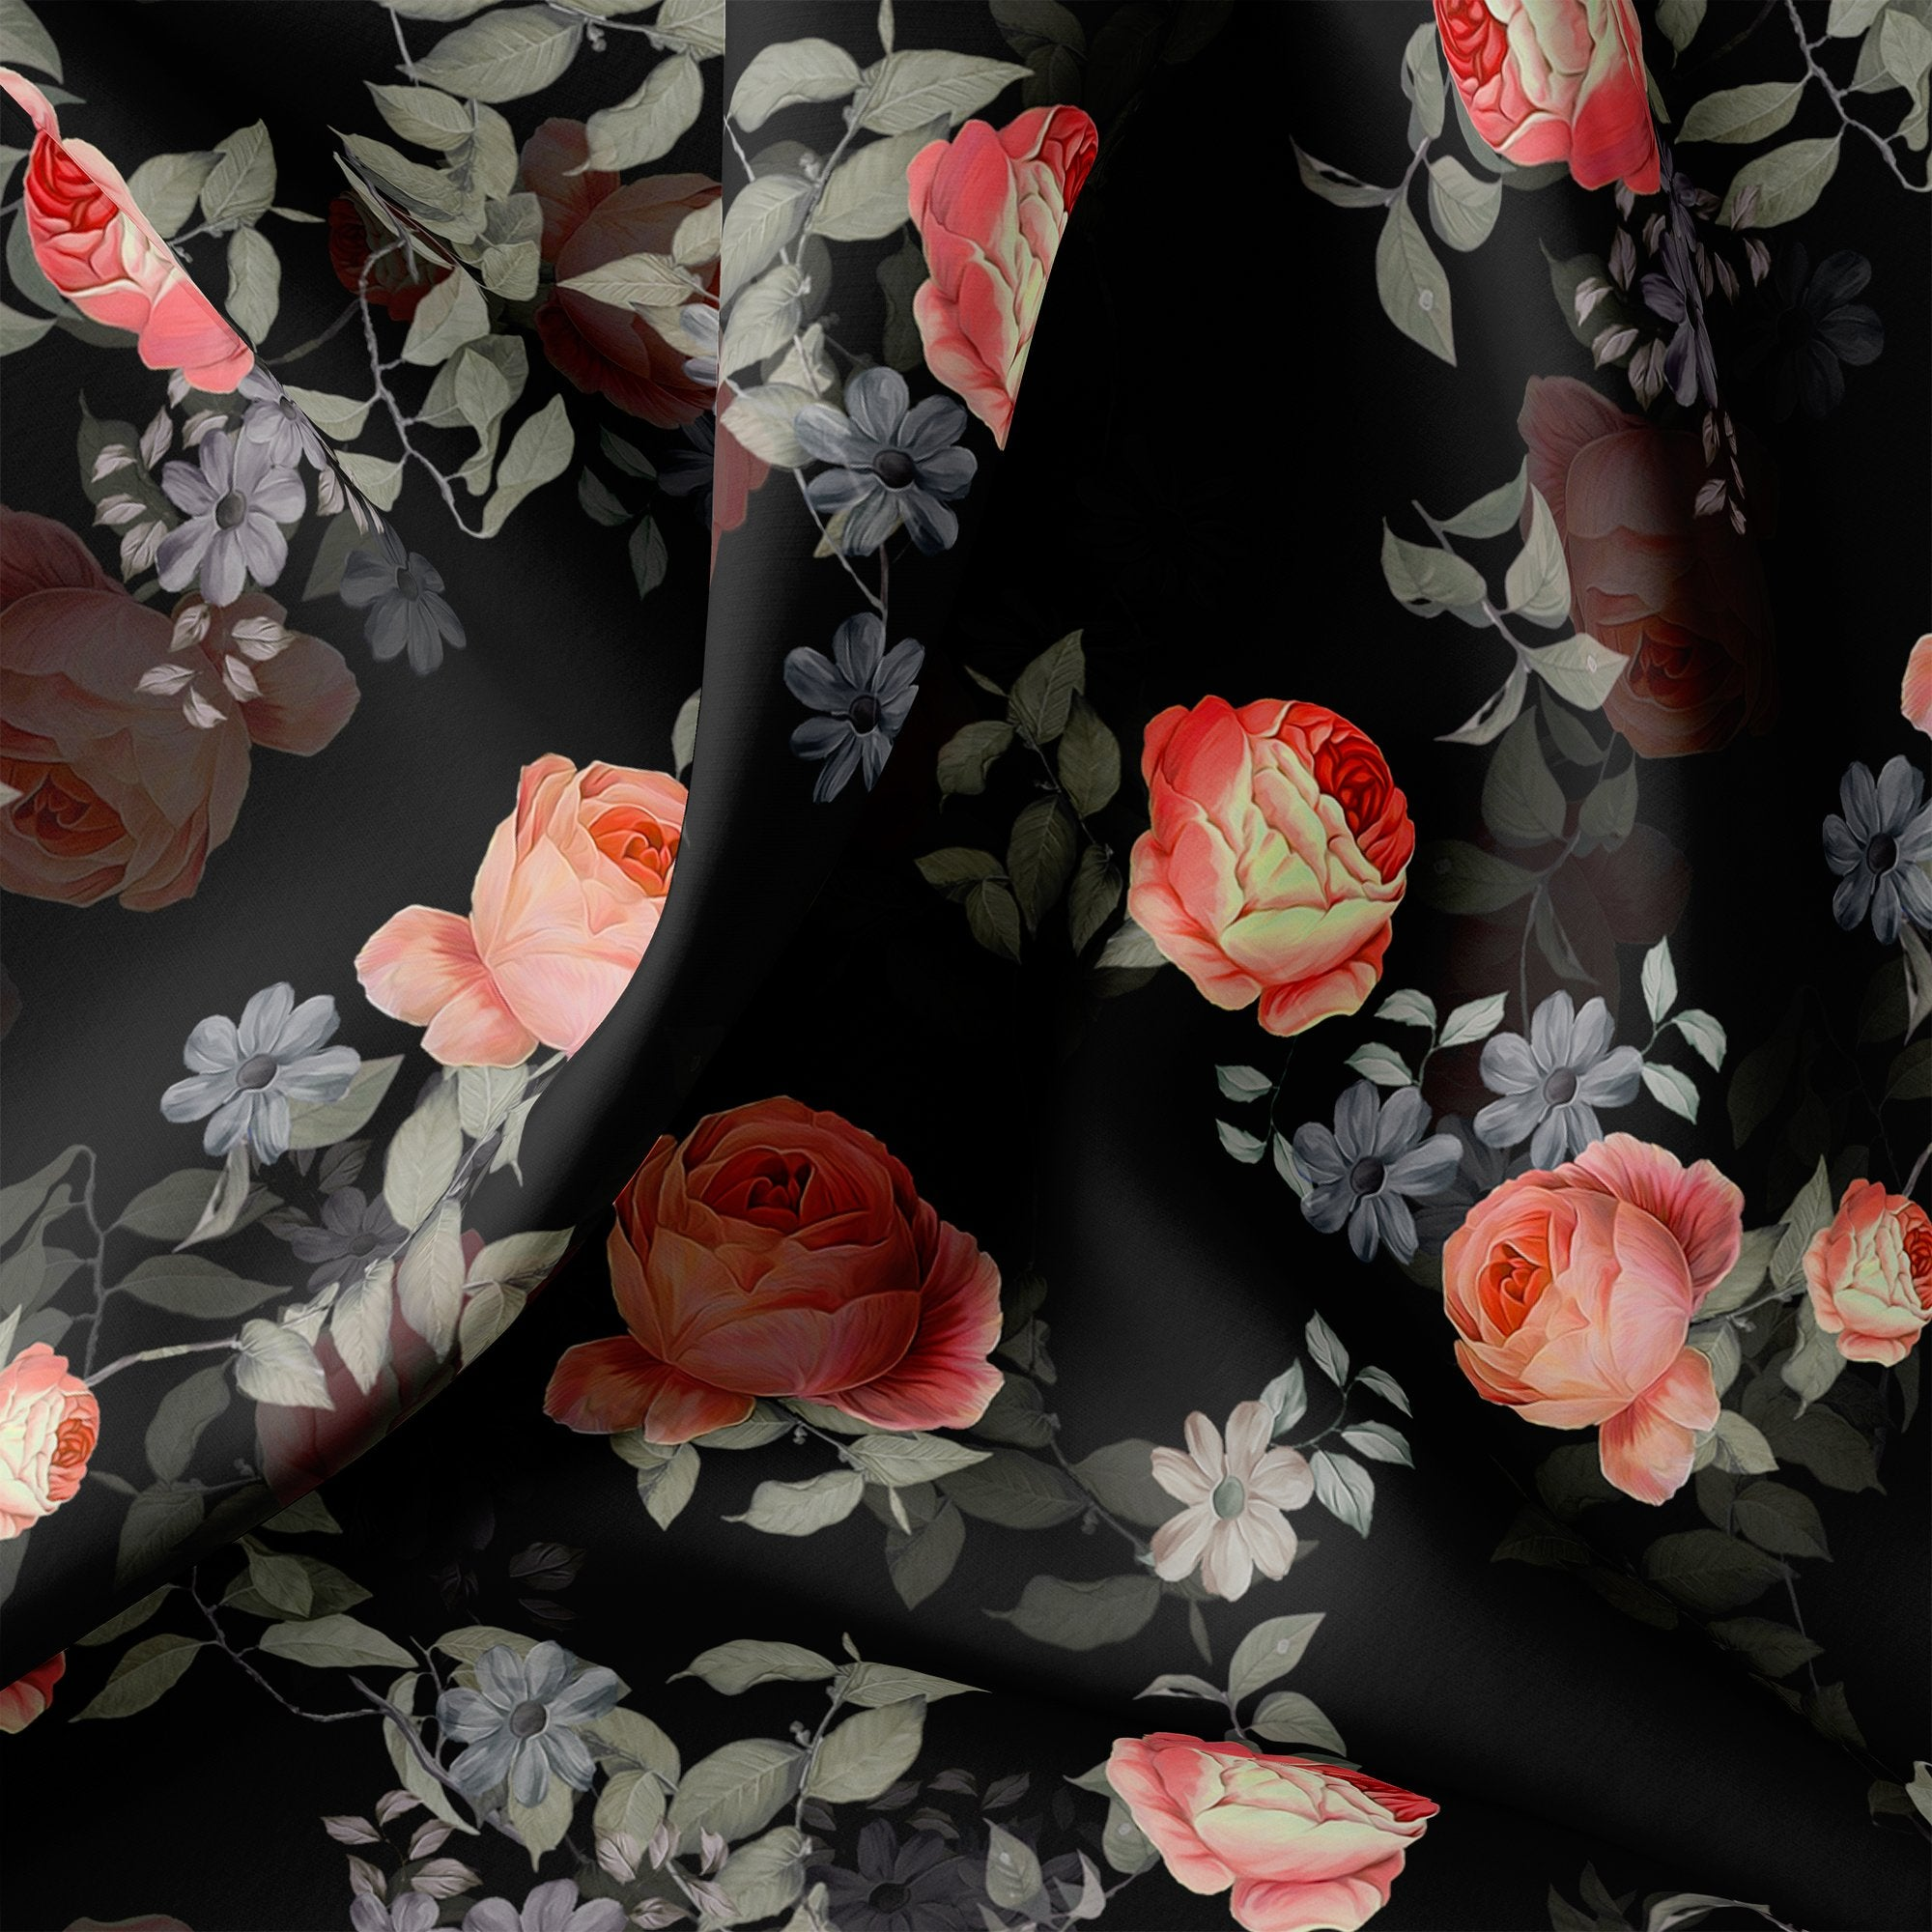 Elegant Floral Over Black Base Digital Printed Fabric - FAB VOGUE Studio. Shop Fabric @ www.fabvoguestudio.com